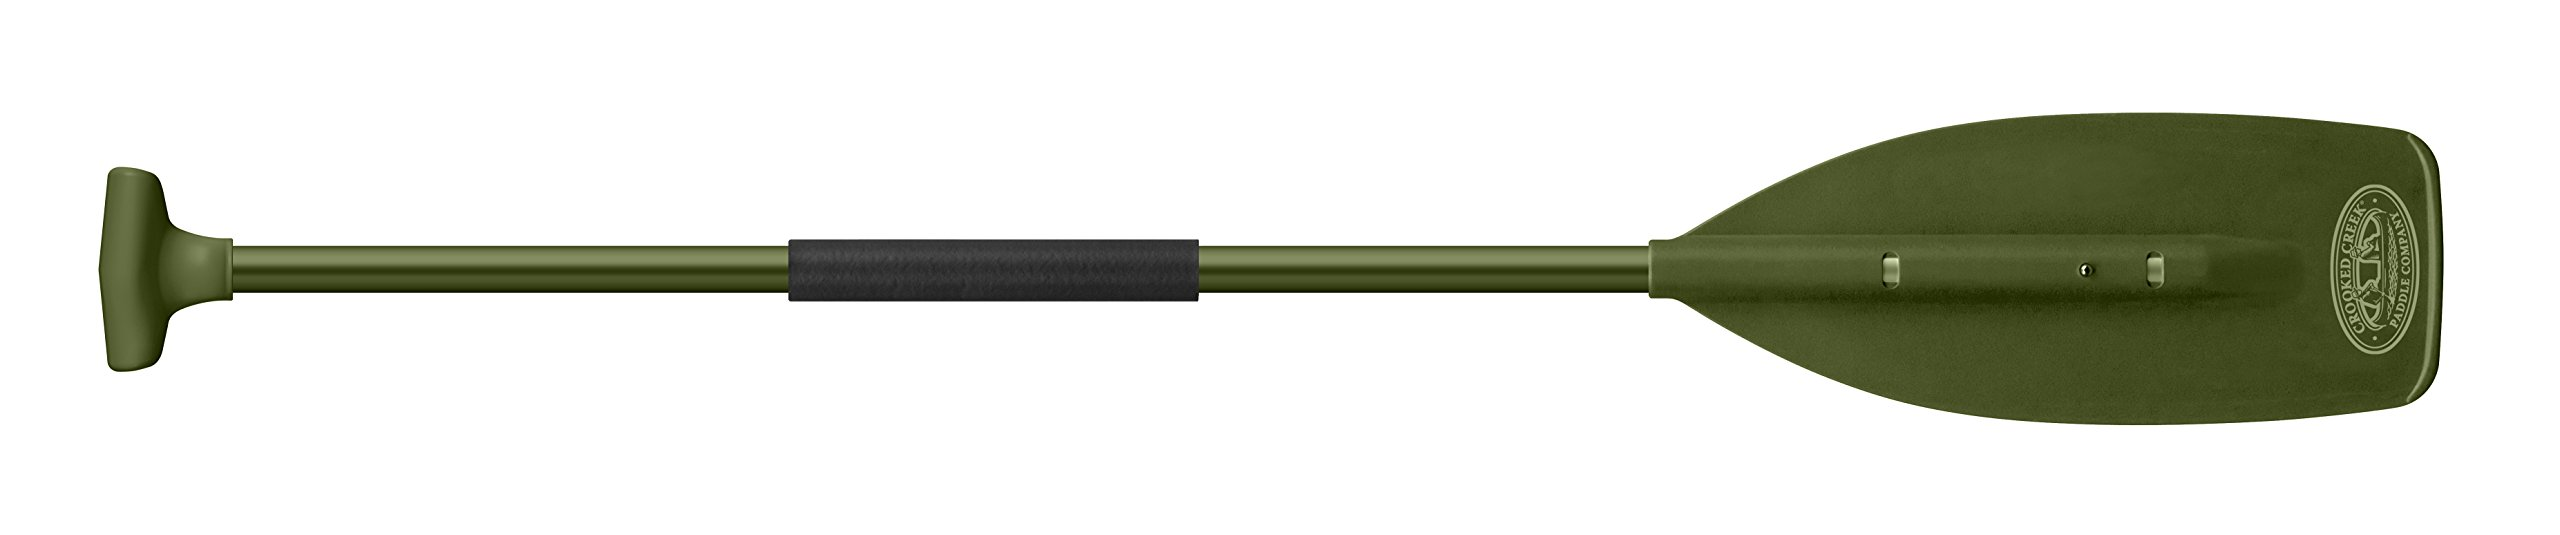 Trac Dynamics SYNTHETIC OLIVE GREEN PADDLE, HYBRID GRIP 5 FT- QTY 2